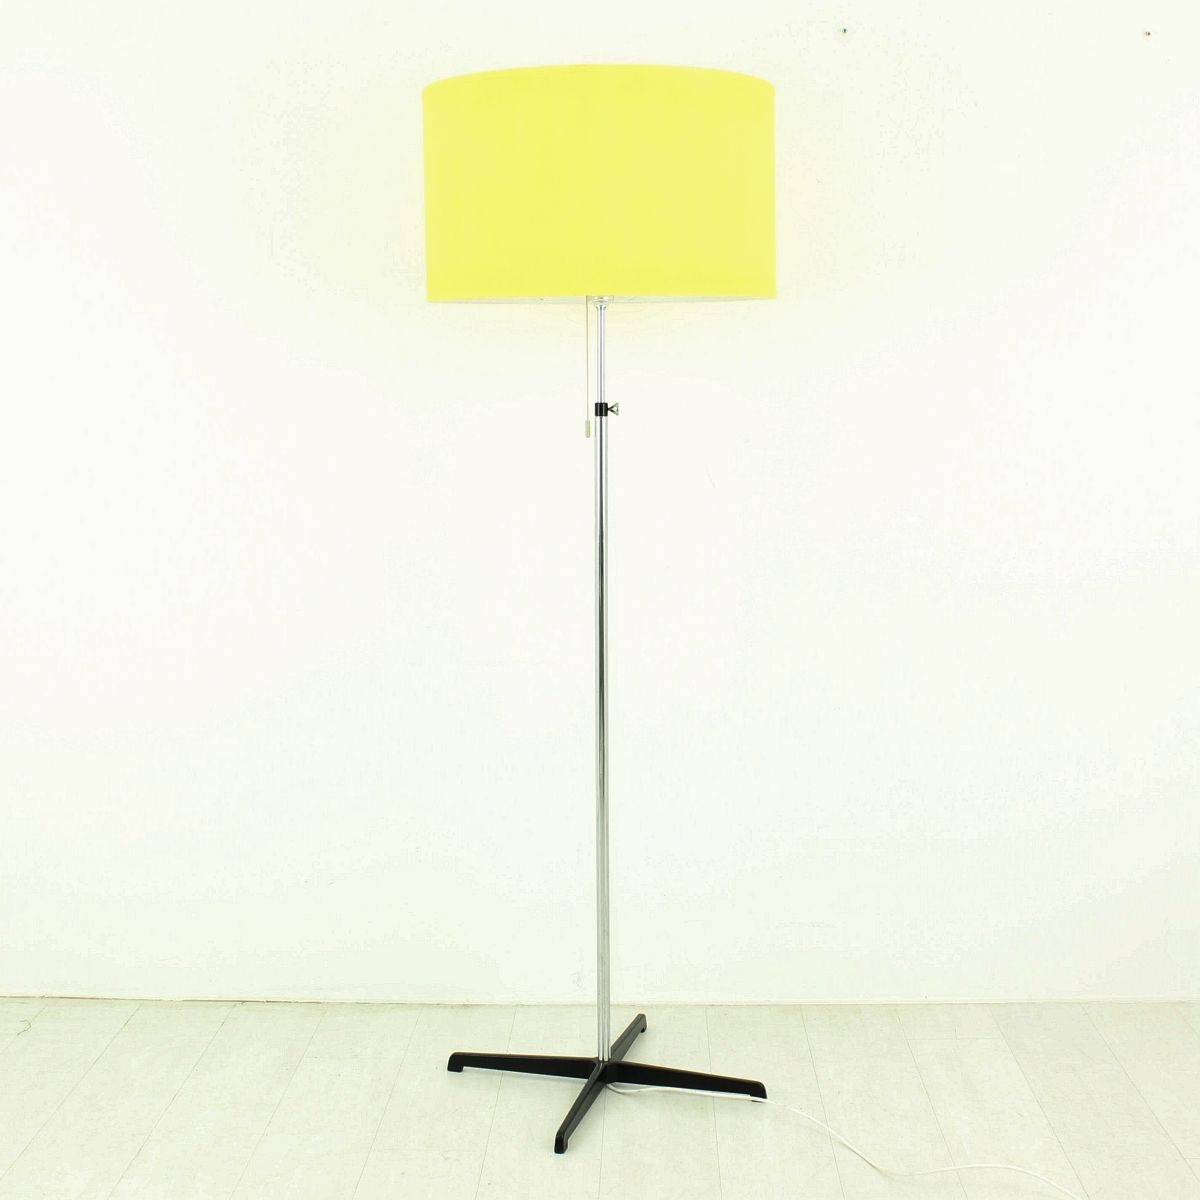 Chrome floor lamp with yellow shade 1970s for sale at pamono for 1970s floor lamps